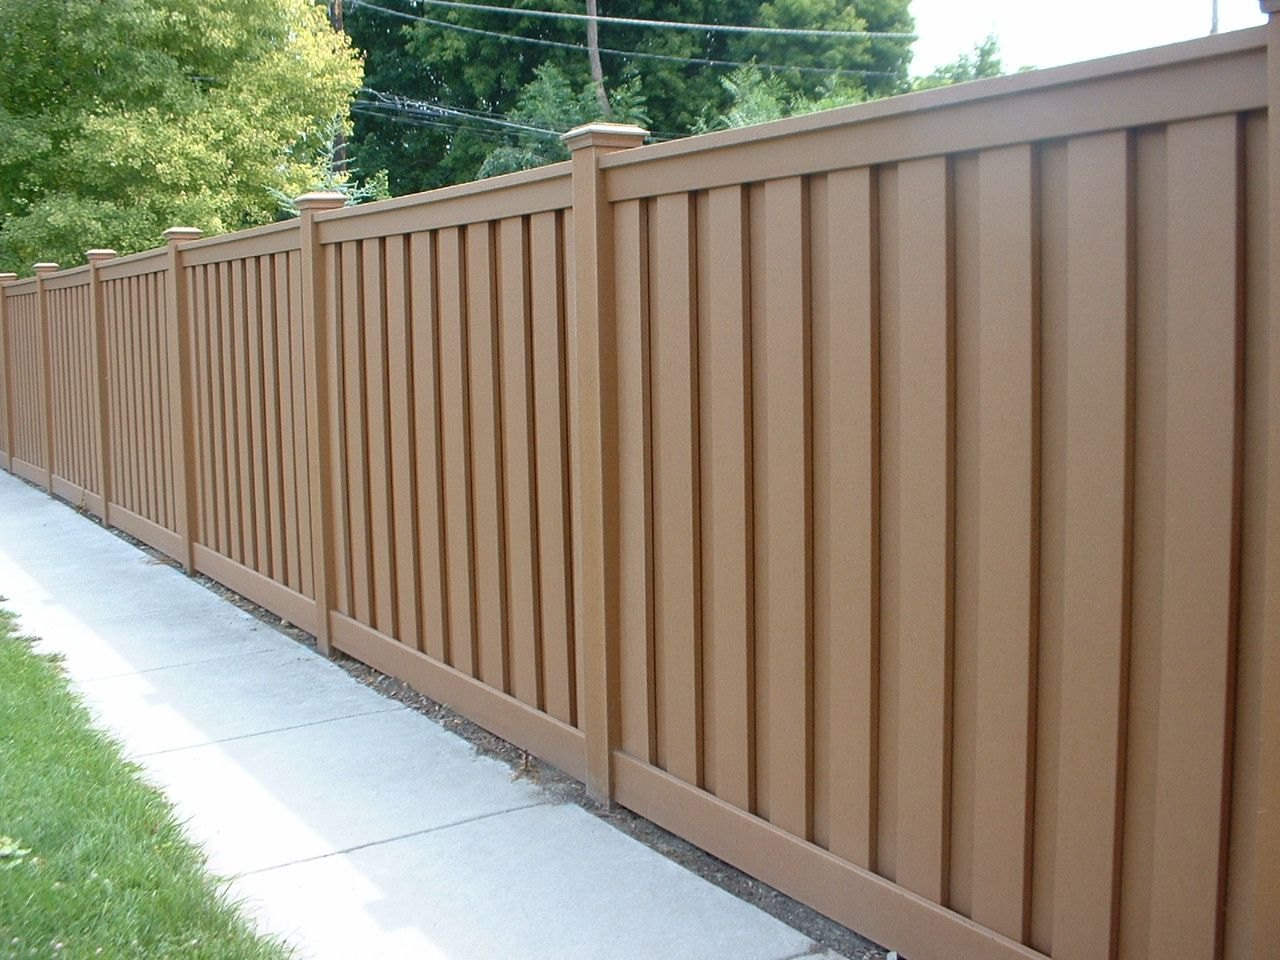 Wpc cheap fence panels wood plastic composite outdoor fence board cheap pvc wpc fence Cheap wood paint